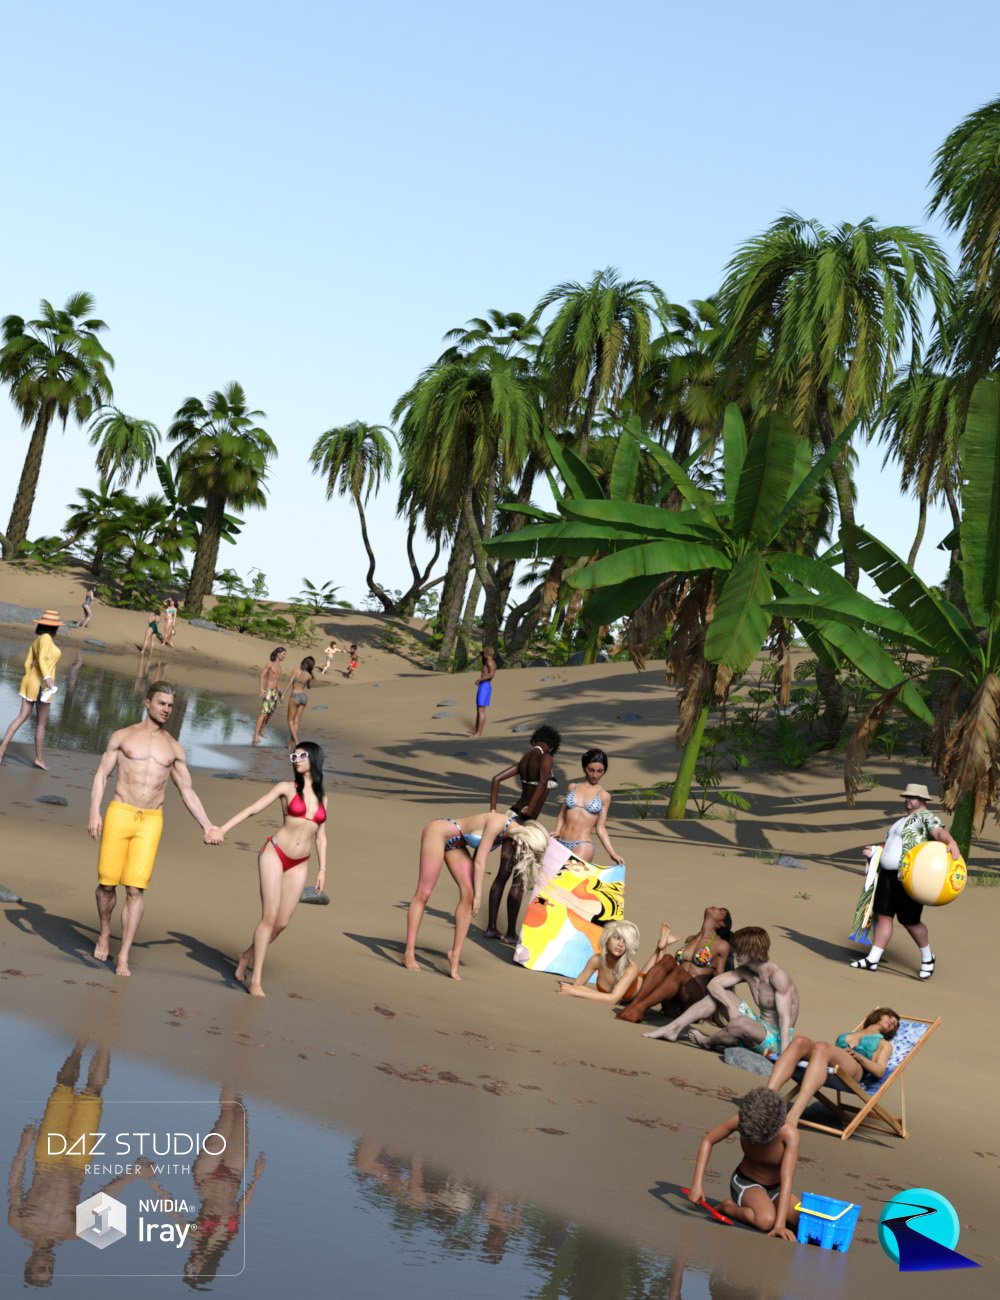 Now-Crowd Billboards - Beach Life by: RiverSoft Art, 3D Models by Daz 3D